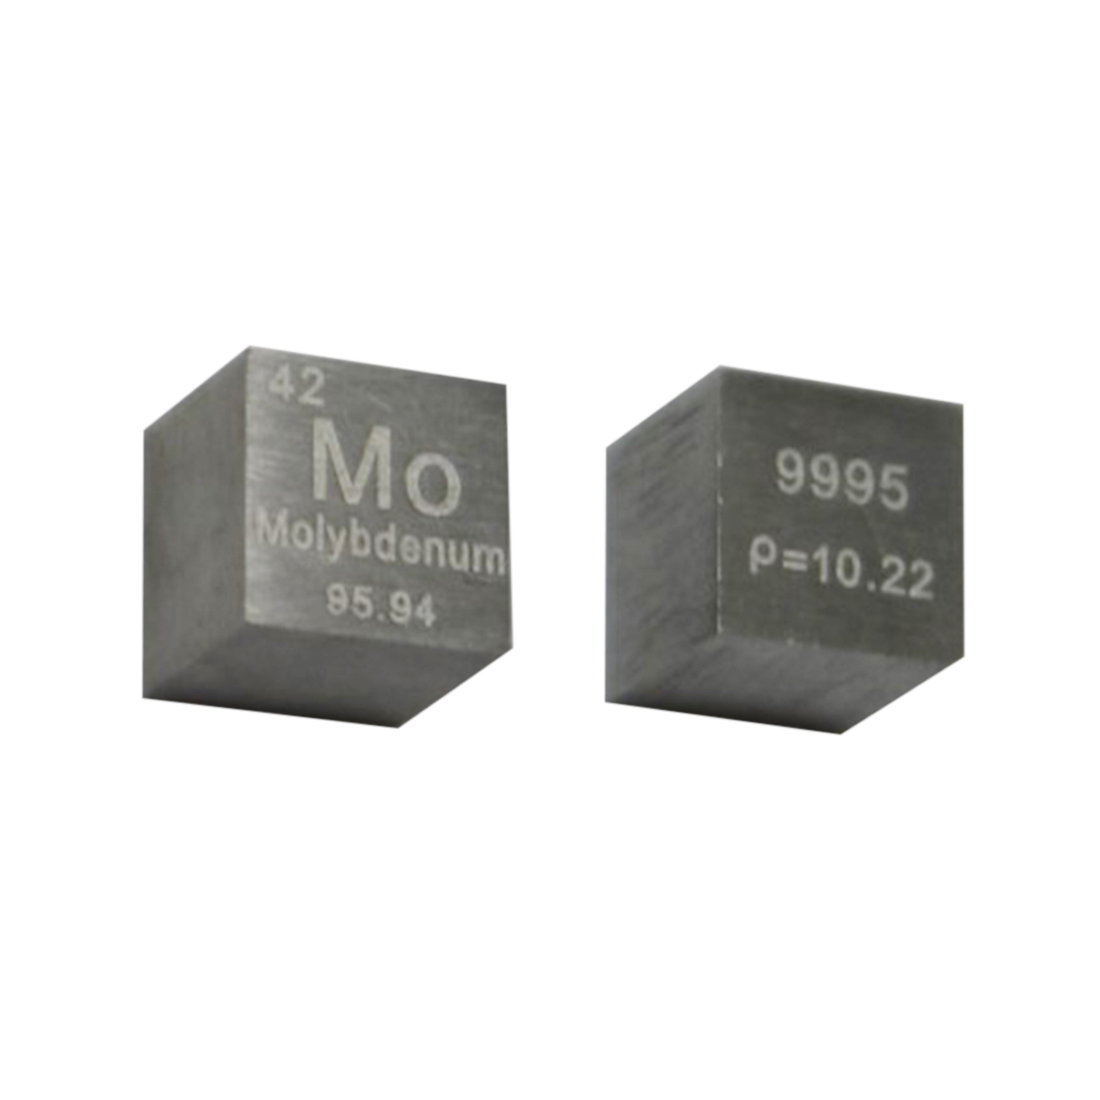 High Pure 10 X 10 X 10mm Wiredrawing Metal Molybdenum Cube Periodic Table Of Elements Cube For Study Lab Collection(Mo≥99.95%)